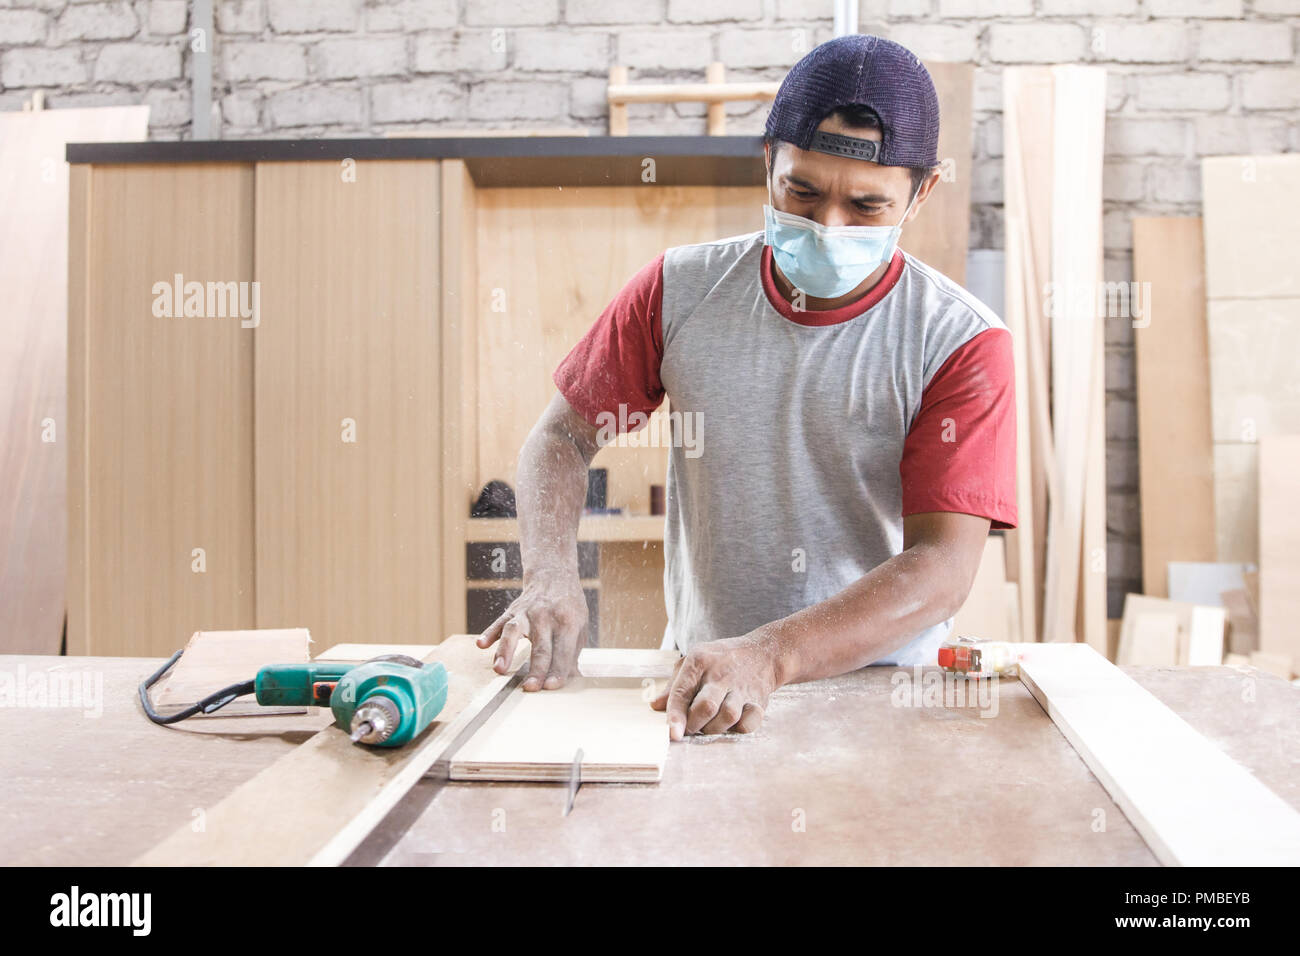 worker at carpenter workspace cutting the wood board using saw t Stock Photo